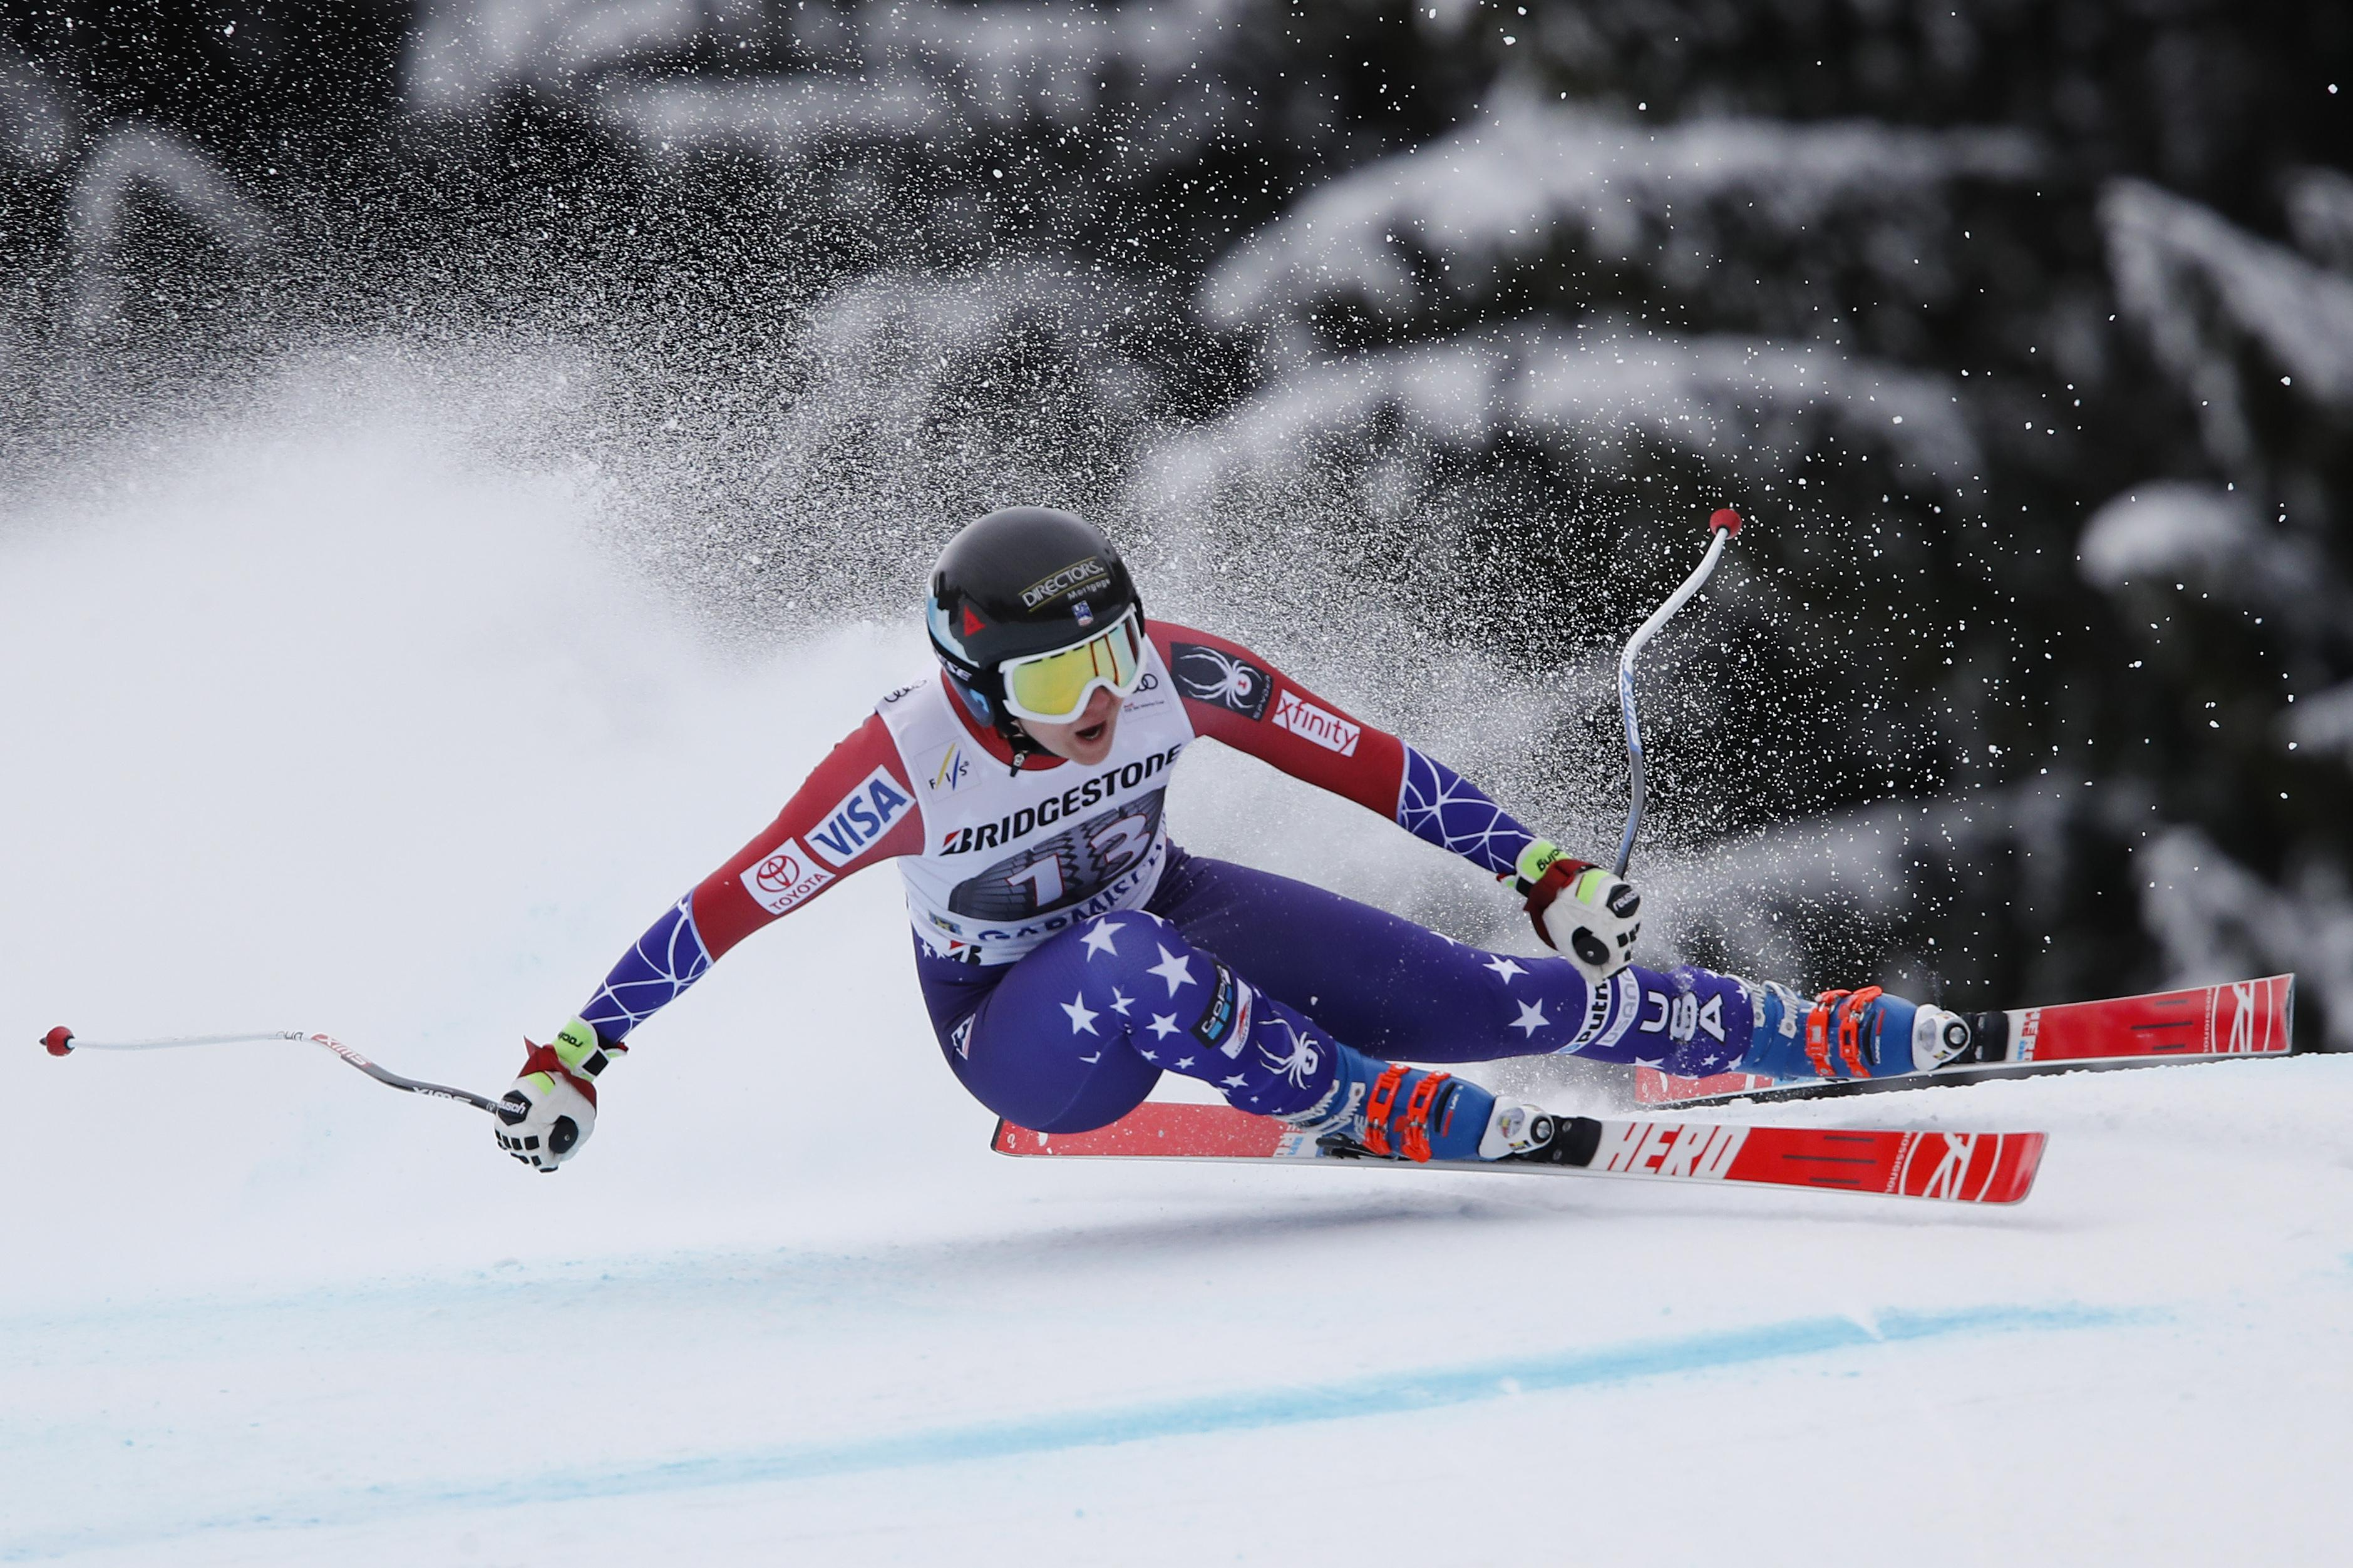 The American skier was looking good down the slopes before the horror crash